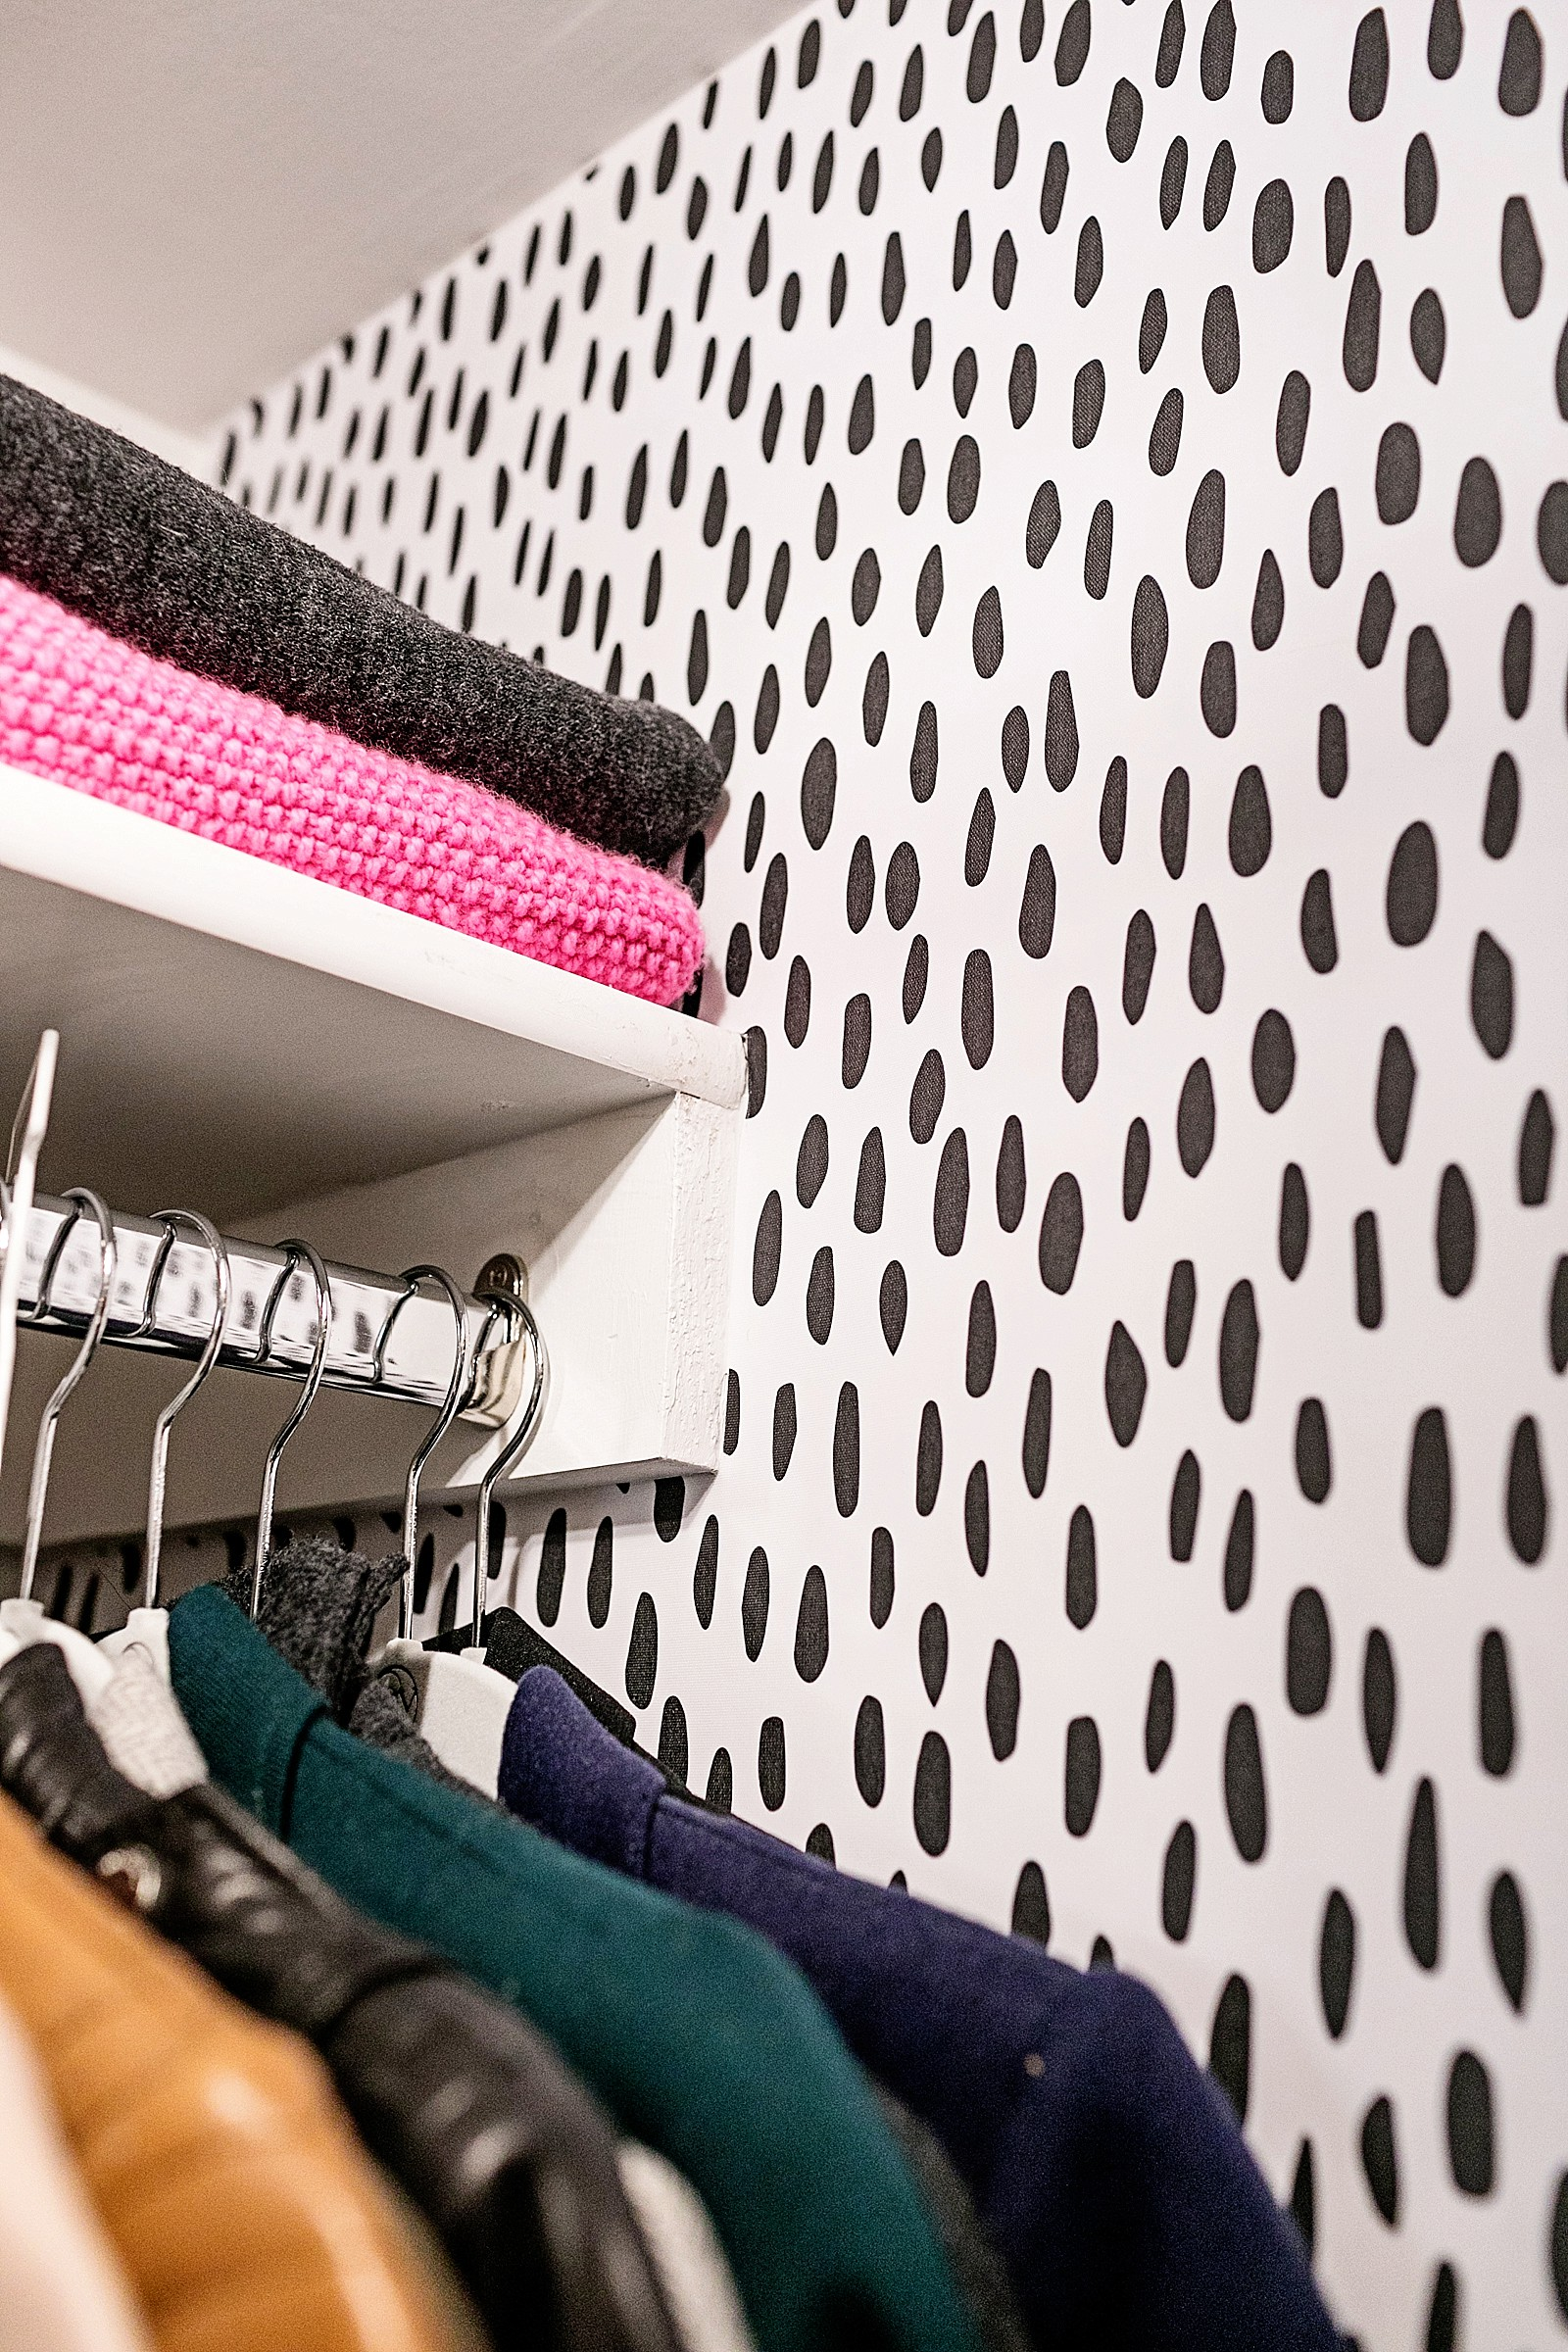 black and white spot Dalmatian look removable wallpaper in small closet